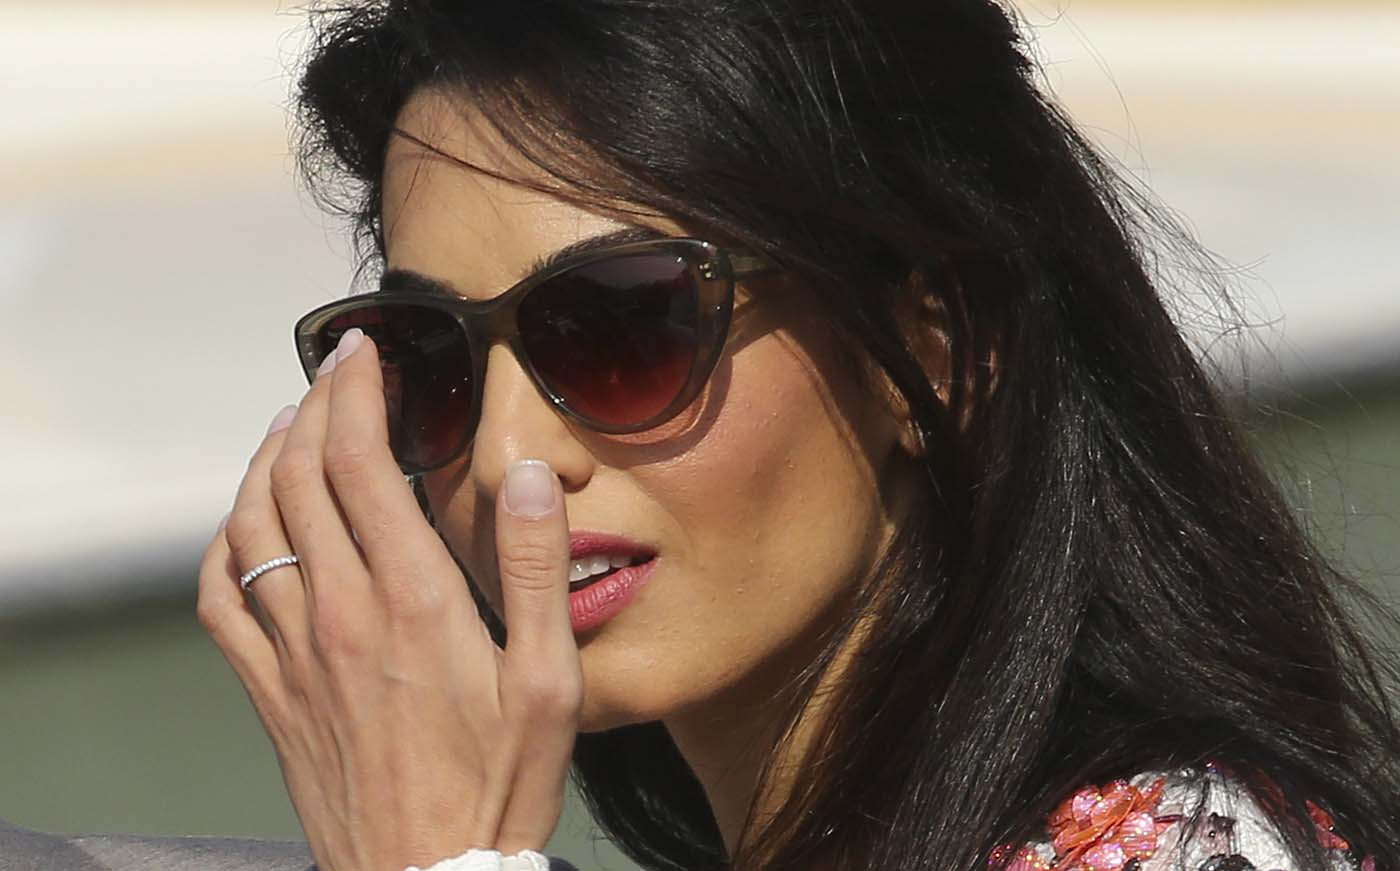 A wedding ring is seen on the hand of Alamuddin as she